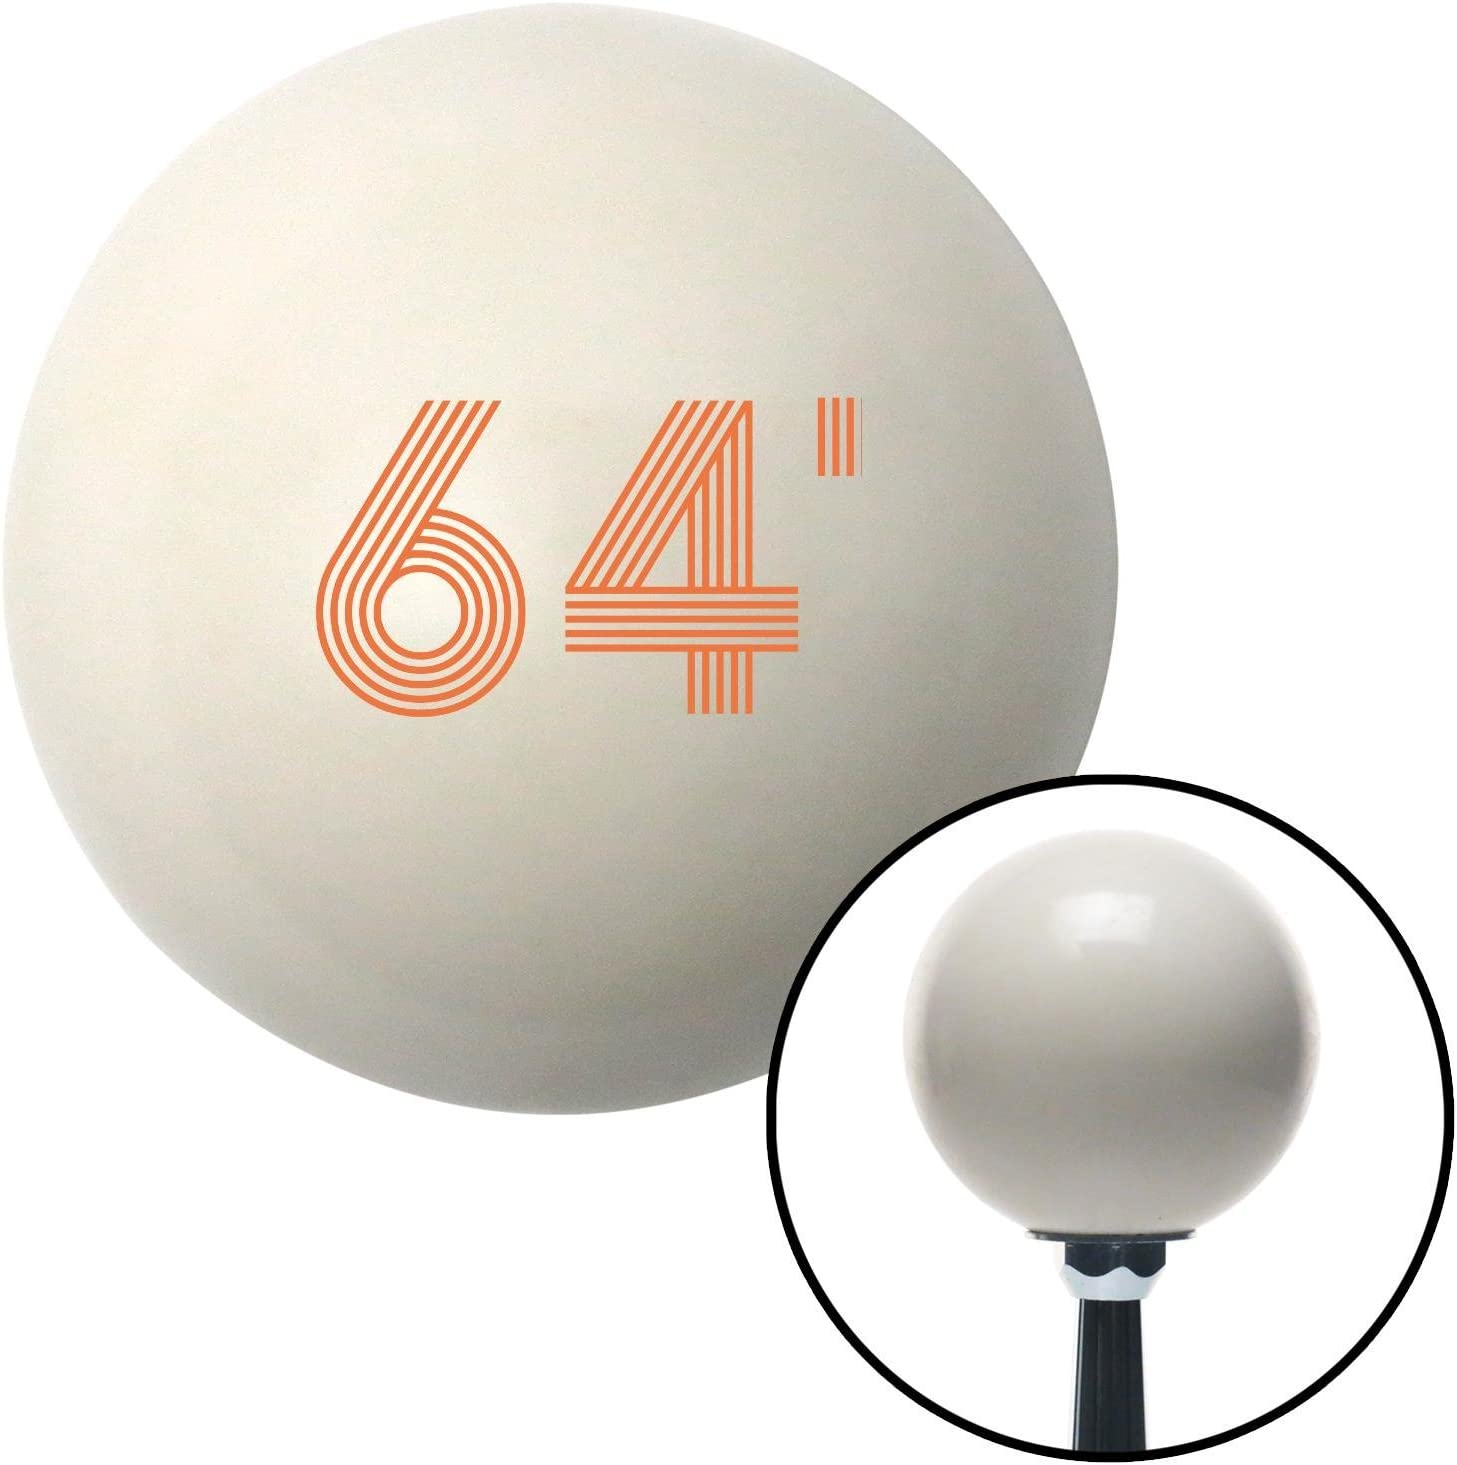 Orange 64 Year Retro Series American Shifter 142575 Ivory Shift Knob with M16 x 1.5 Insert